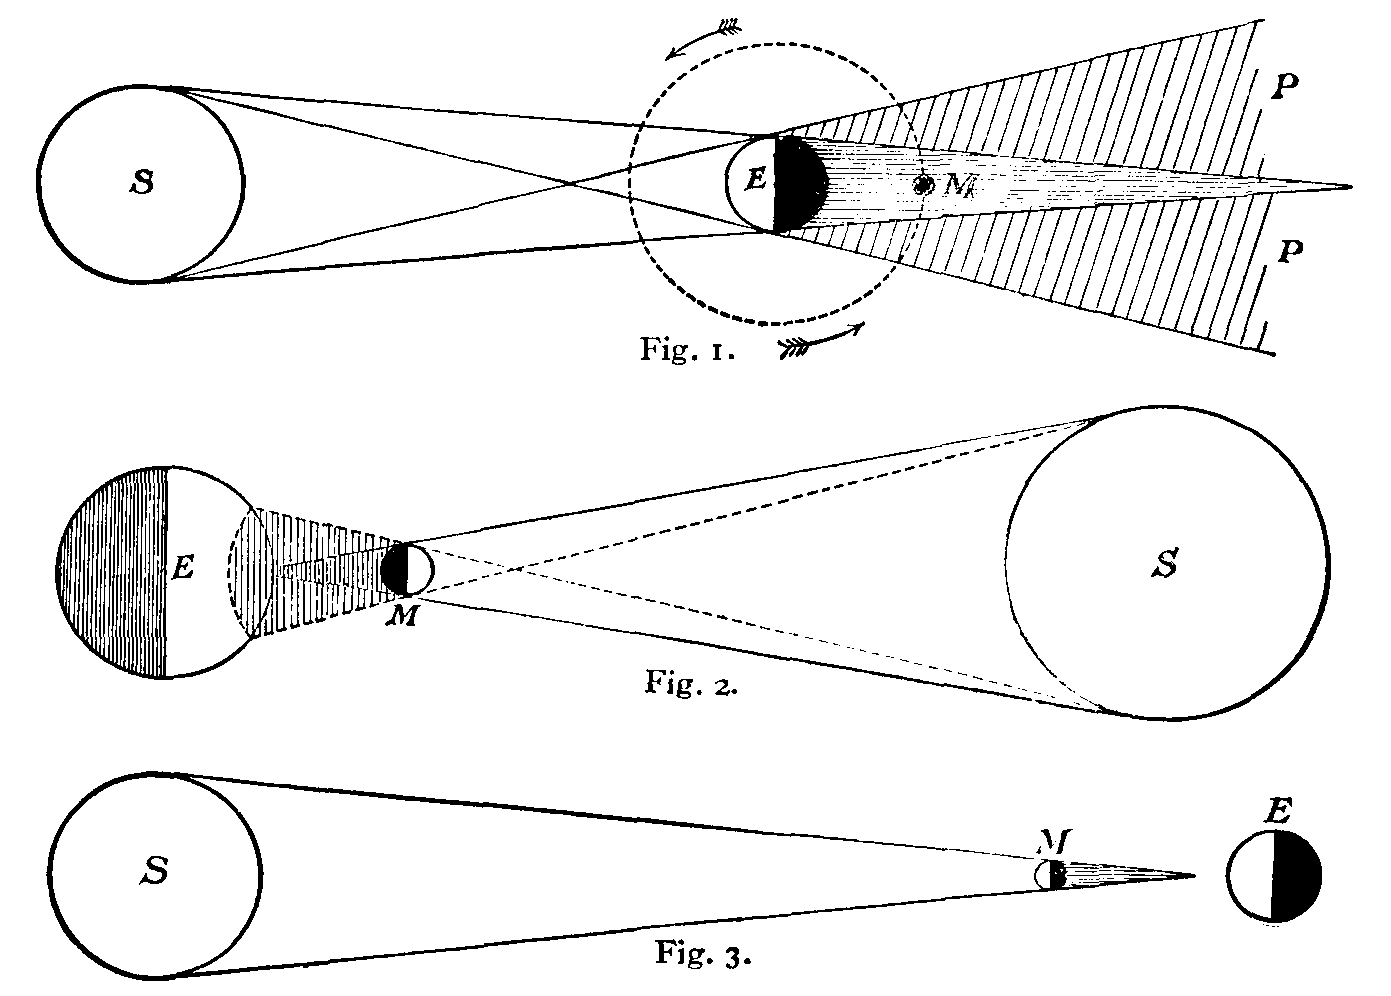 The New Gresham Encyclopedia Volume Iv Part 2 Pplato Flap Phys 54 Ac Circuits And Electrical Oscillations Diagrams Illustrating Theory Of Eclipses